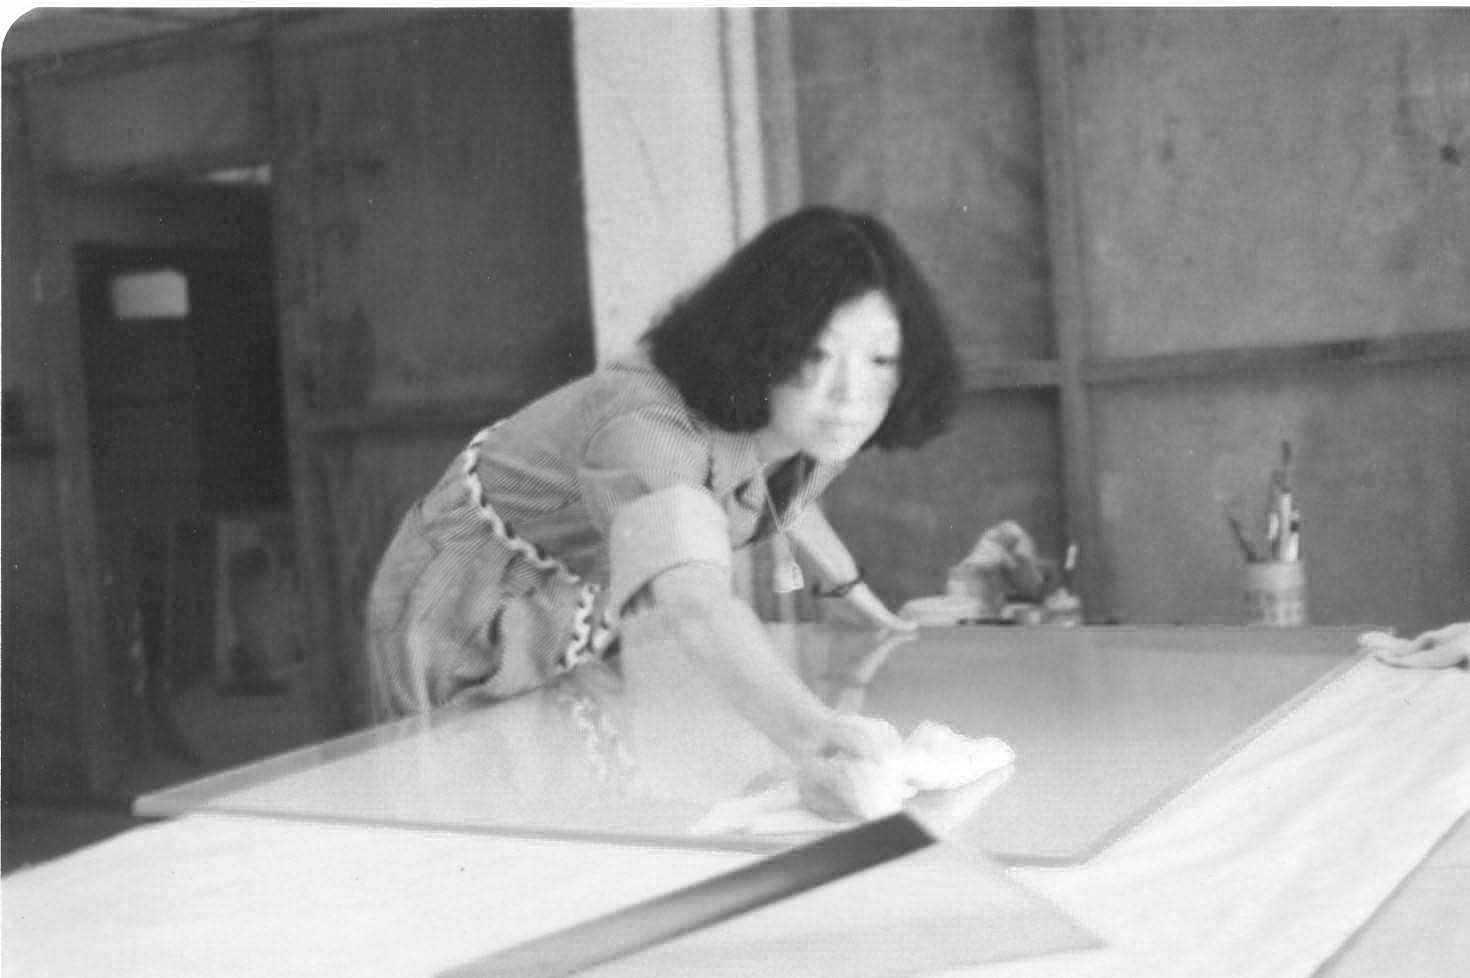 Zhao Hai Tien at work in her studio, 1977